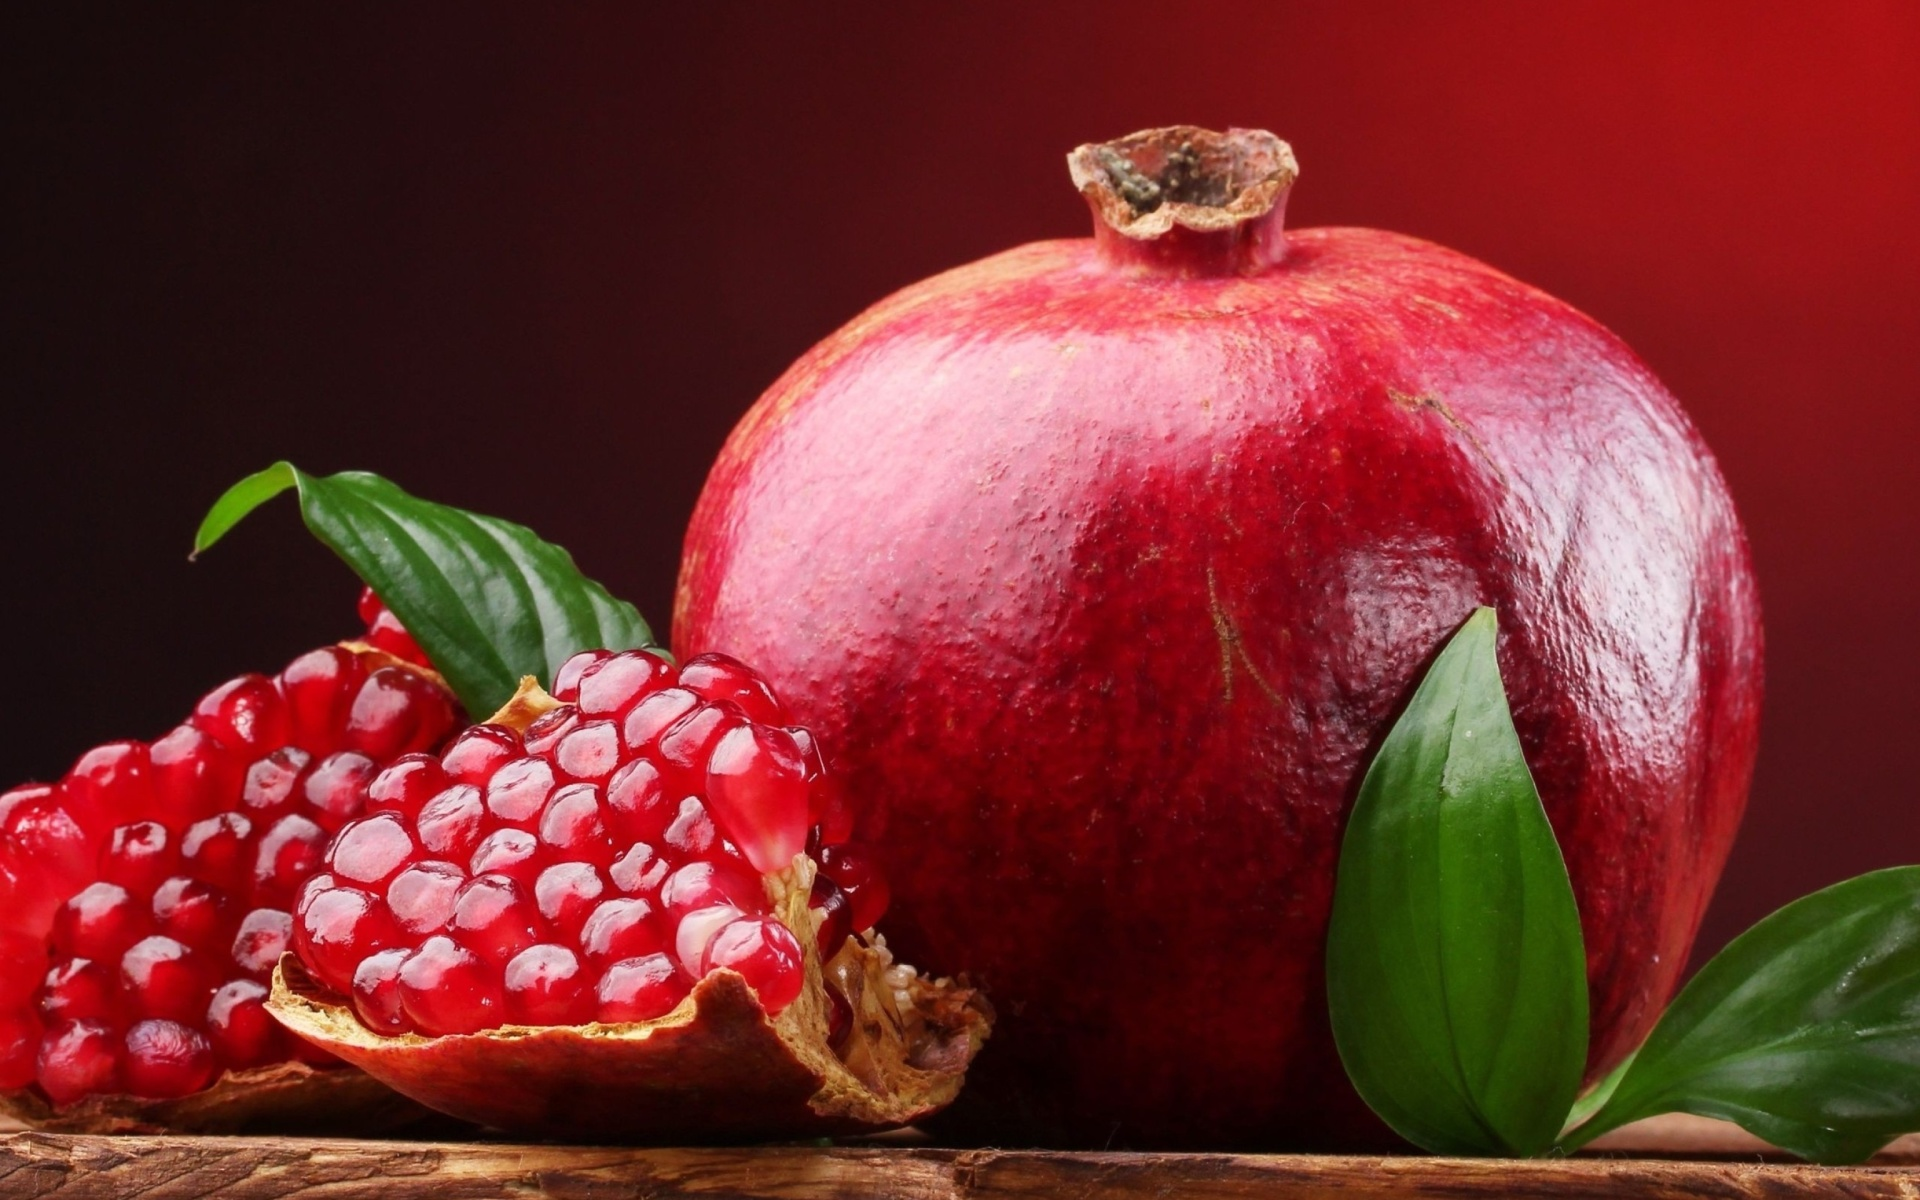 Full hd fruits wallpaper - Ripe Fruit Pomegranate Background For Widescreen Desktop Pc 1920x1080 Full Hd